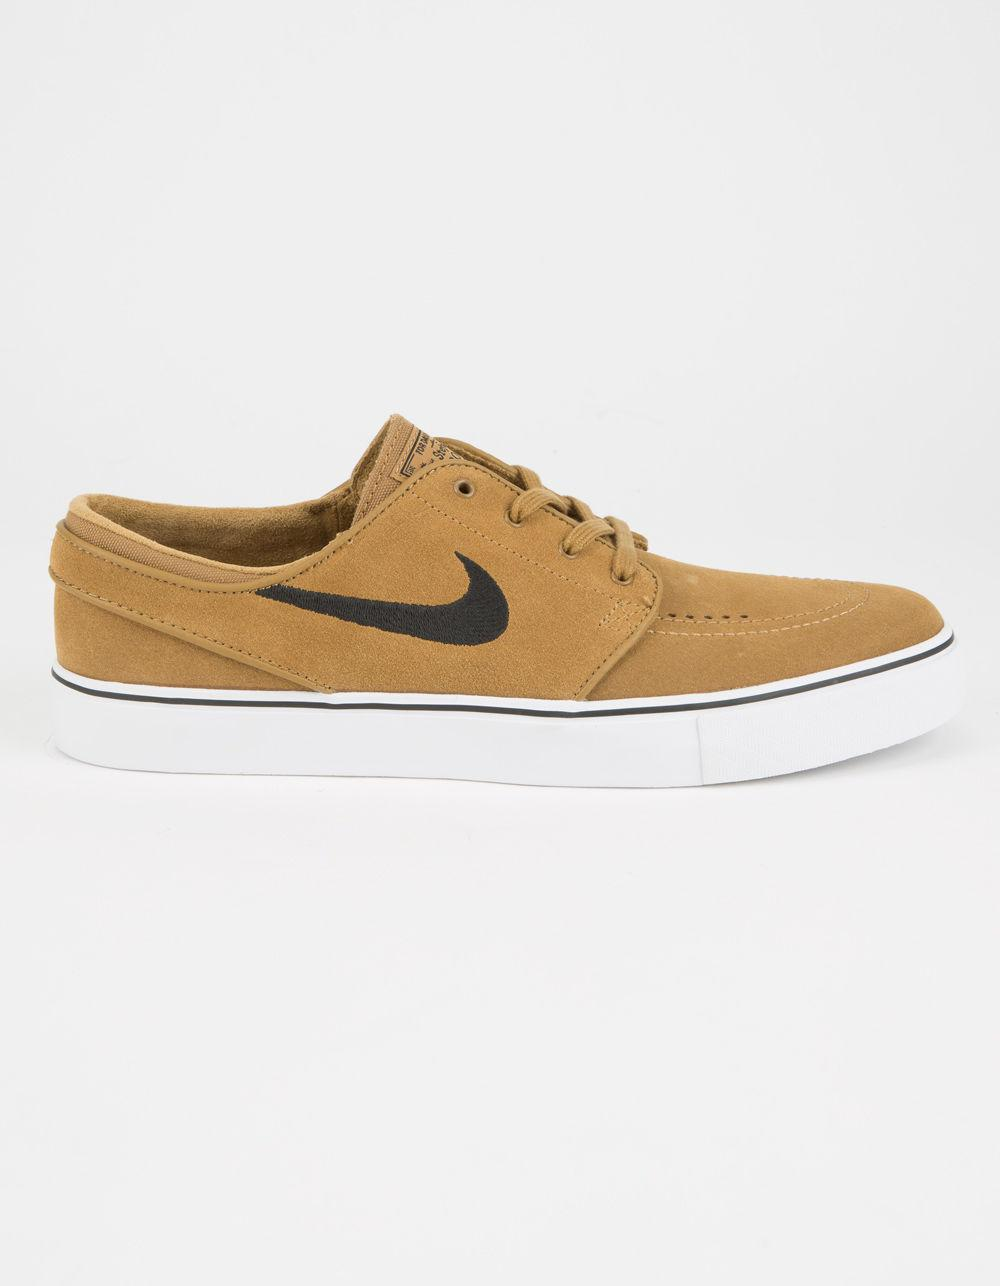 308180c8a21a39 Lyst - Nike Zoom Stefan Janoski Shoes in Natural for Men